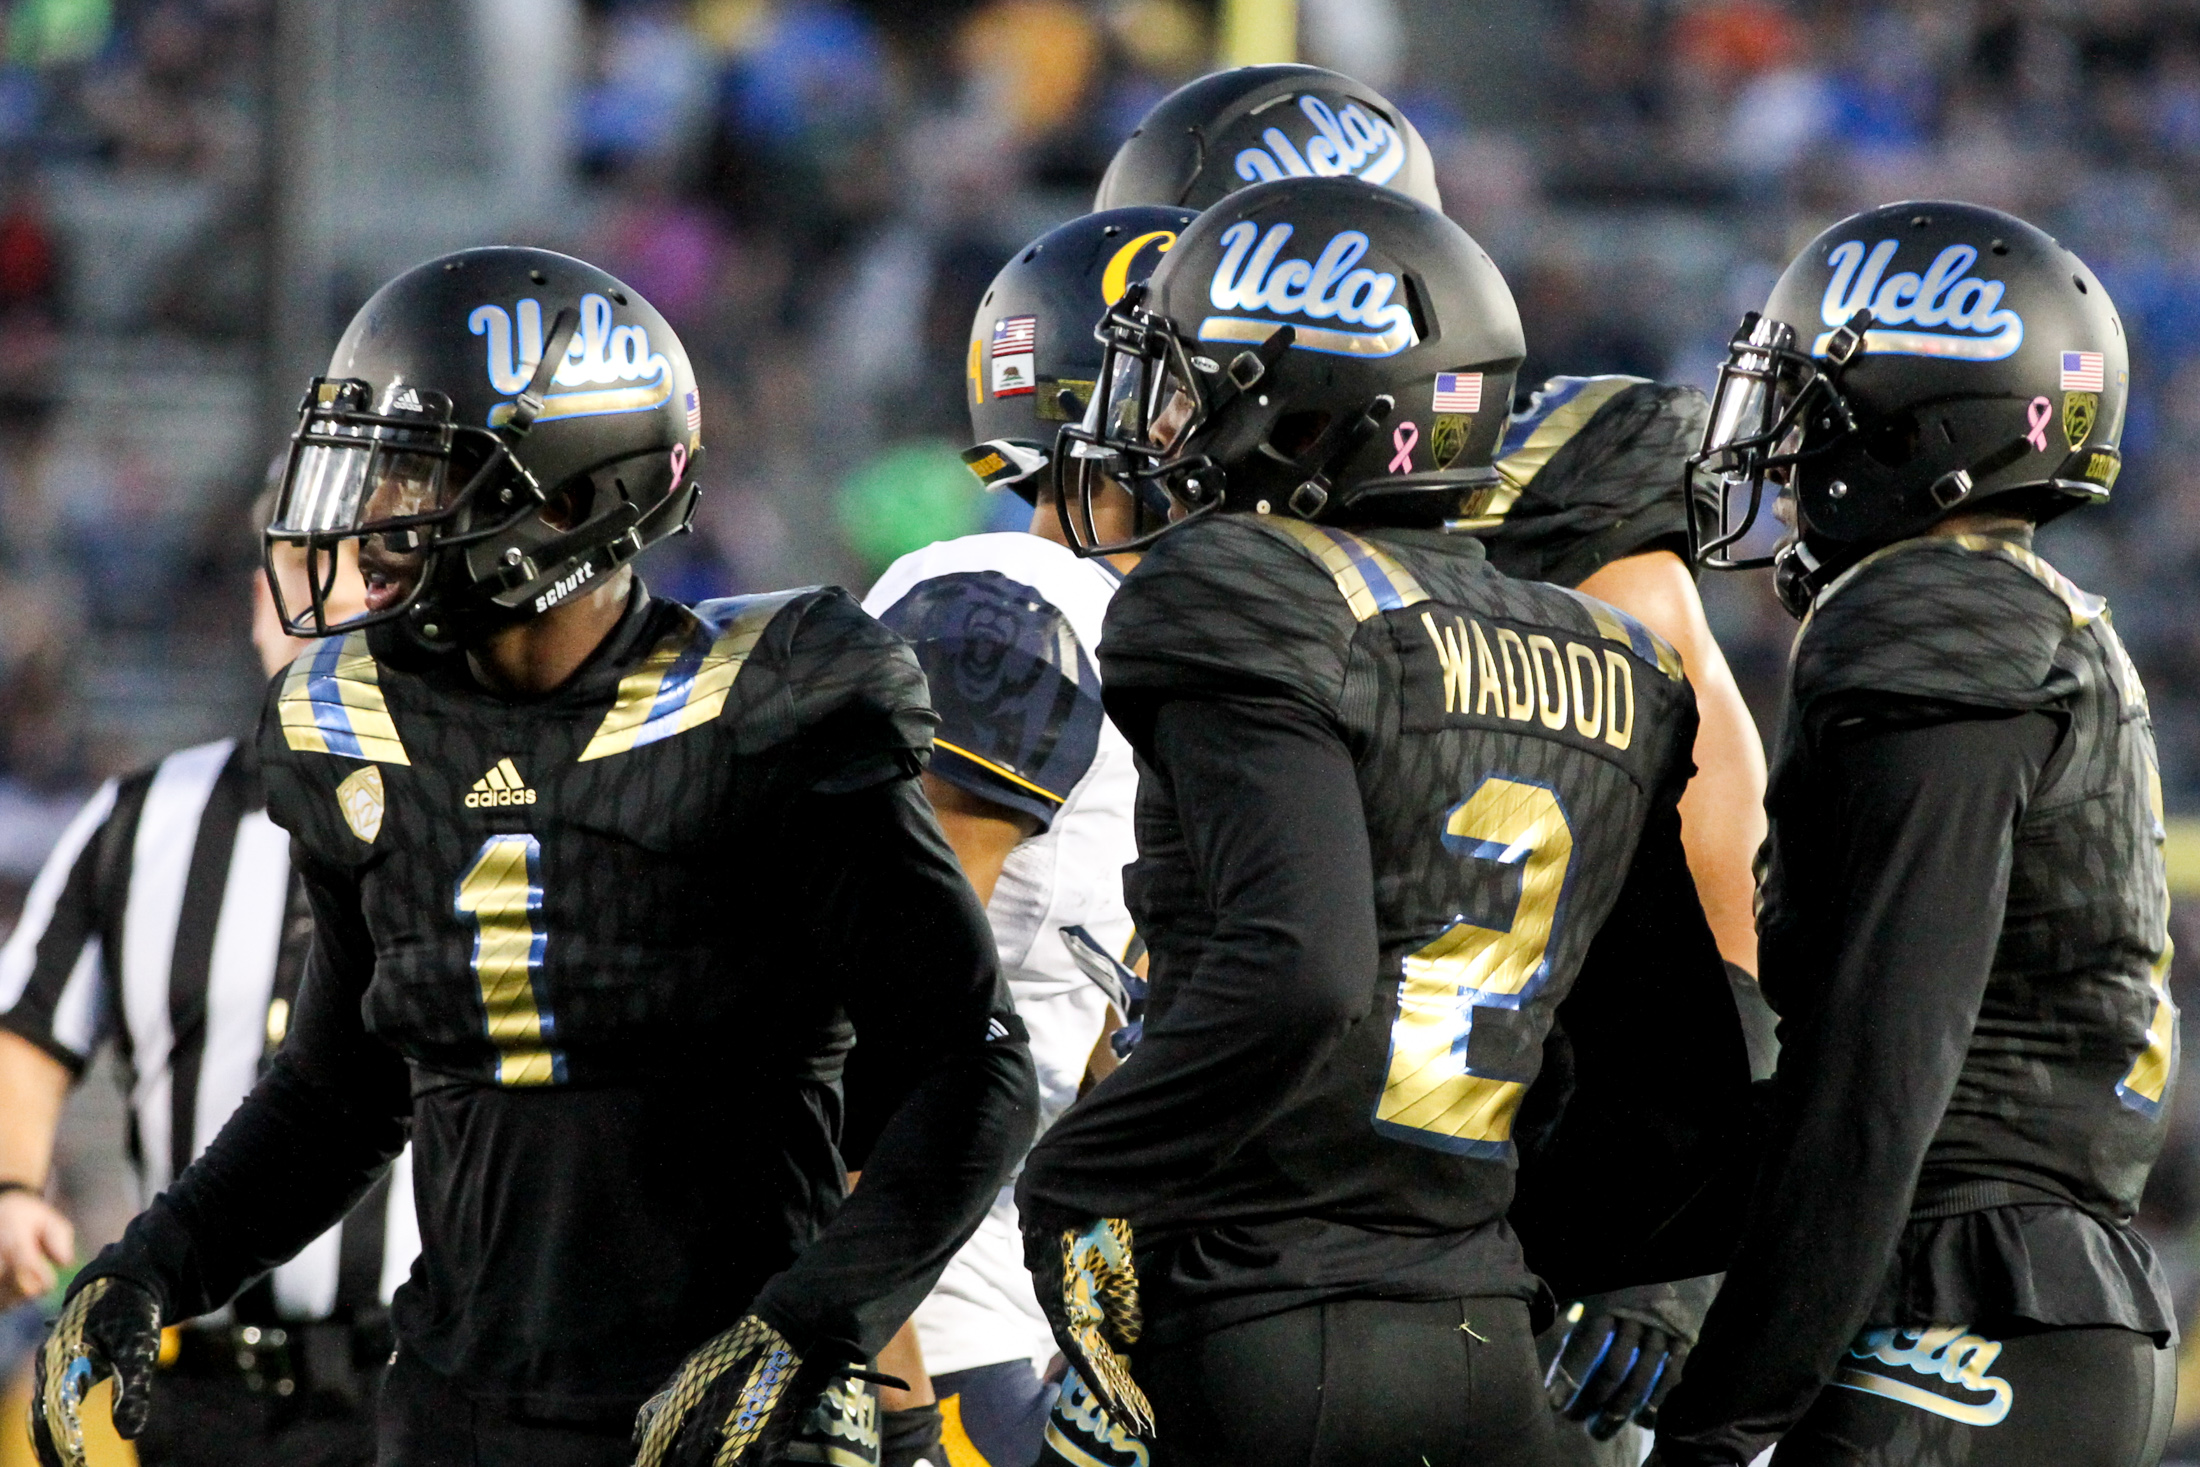 October 22 2015: UCLA Bruins in their Adidas Alternative City Uniforms worn during the game between Cal and UCLA at Rose Bowl in Pasadena, CA. (Photo by Jevone Moore / Full Image 360